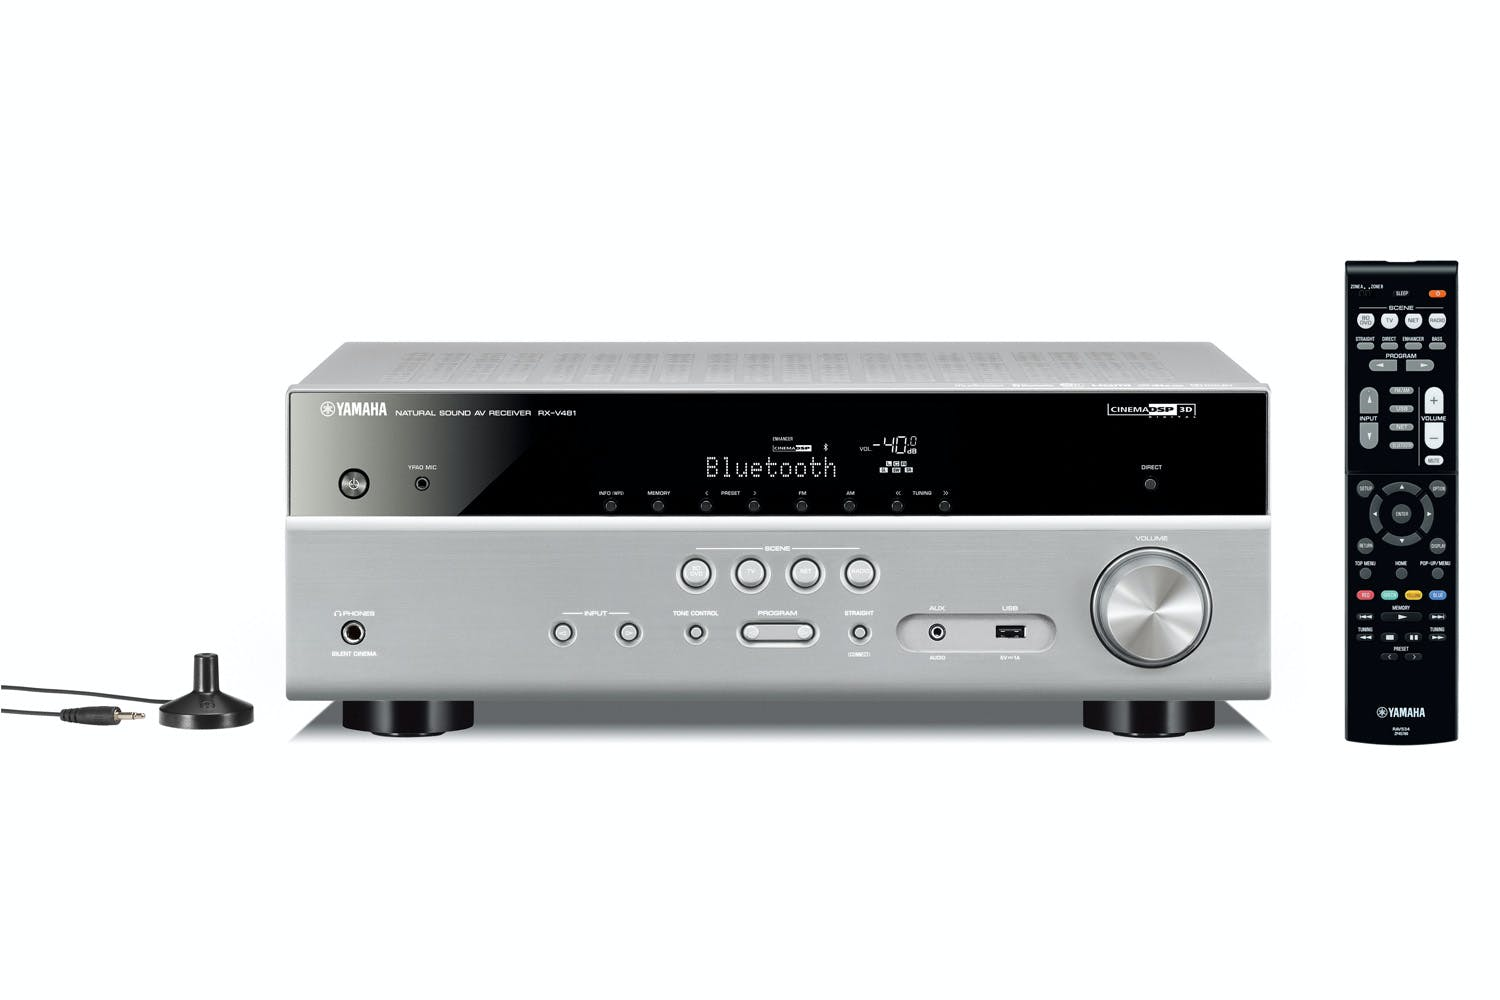 Yamaha 5.1 Channel Amplifier | RX-V481